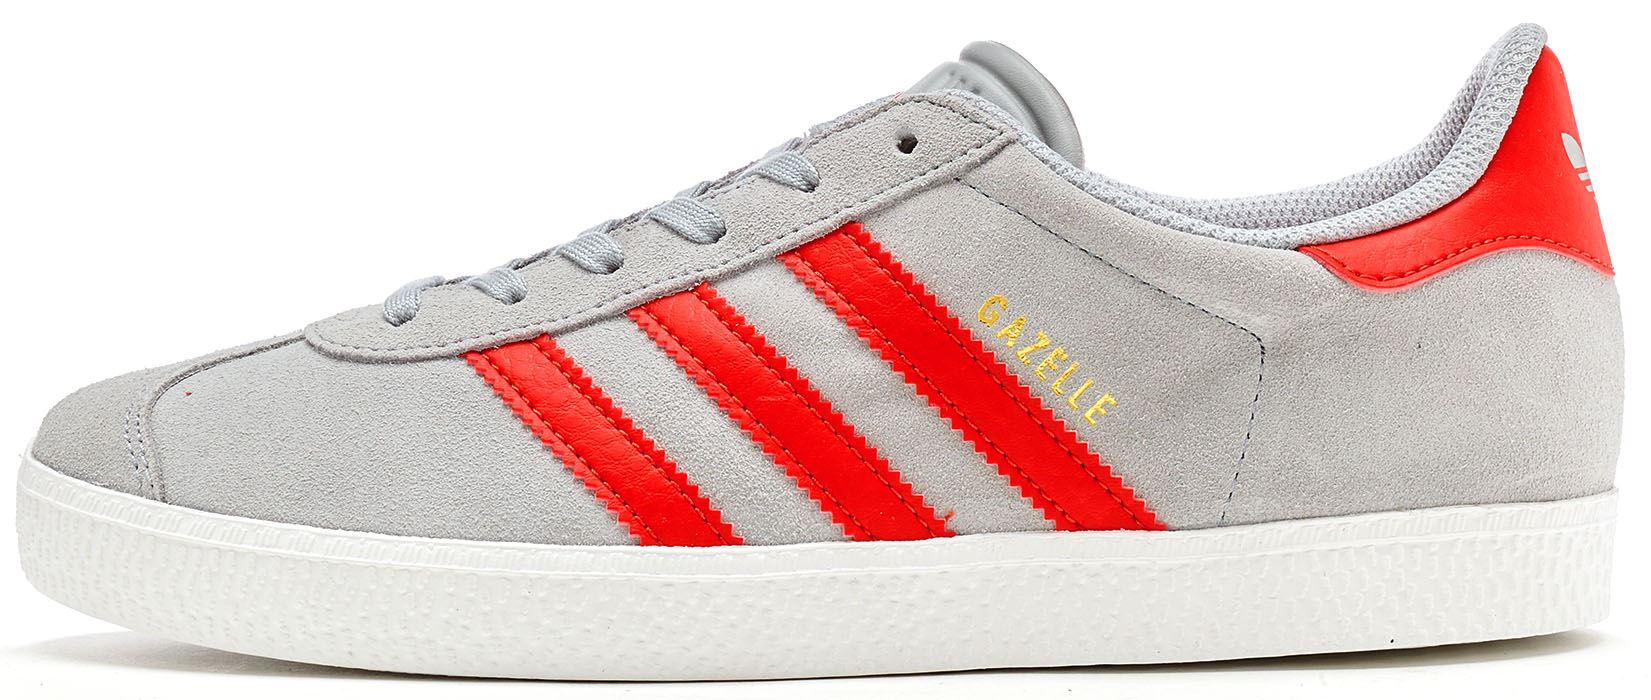 Adidas Originals Gazelle EU 37 1 3